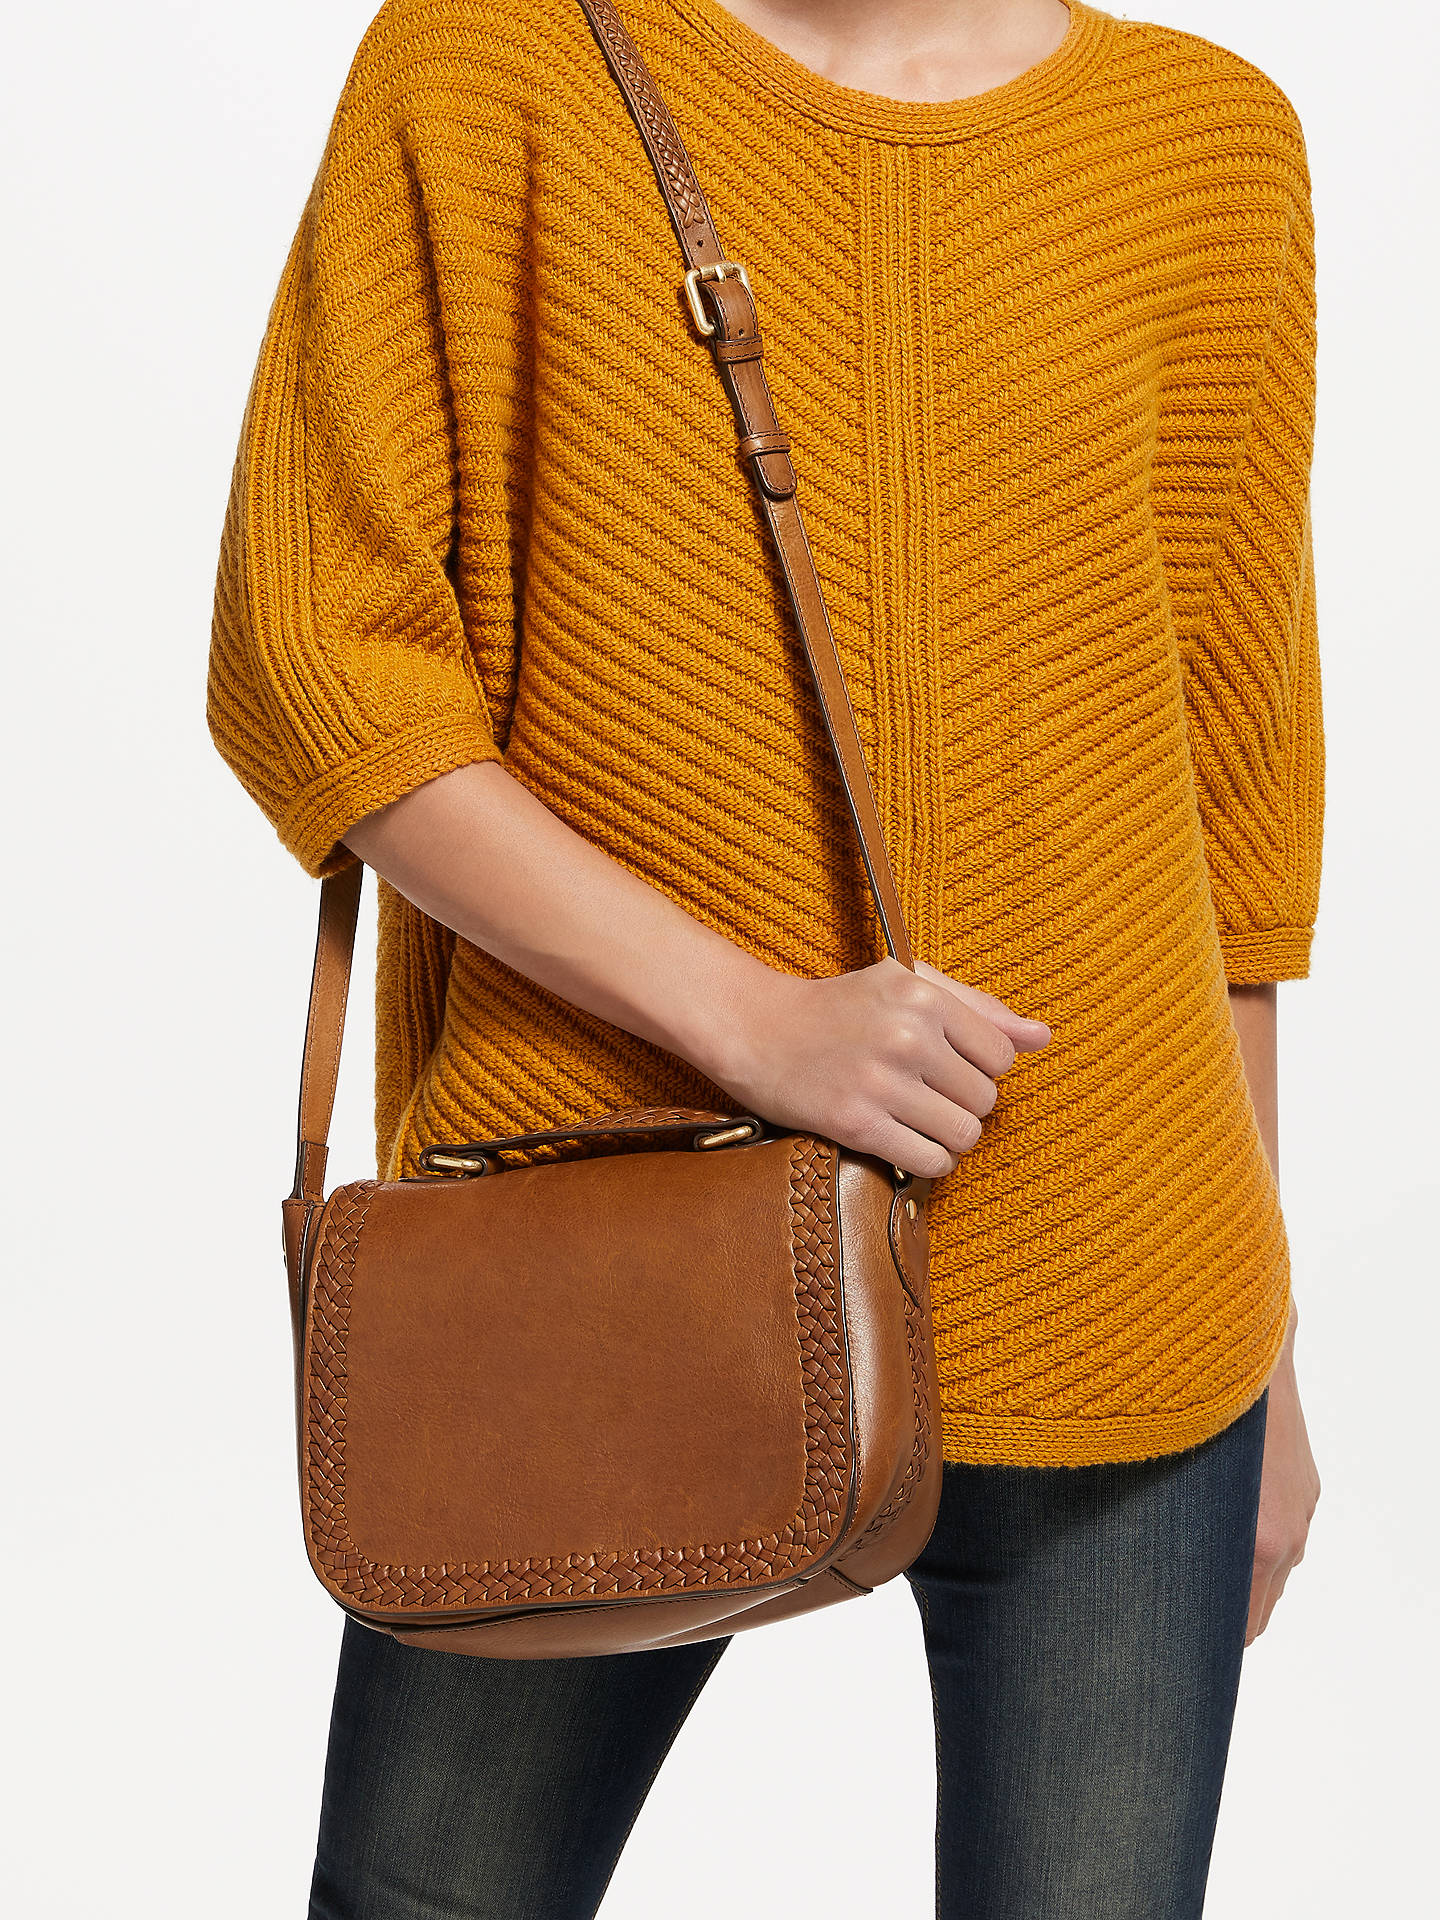 BuyAND/OR Isabella Leather Whipstitch Saddle Bag, Tan Online at johnlewis.com